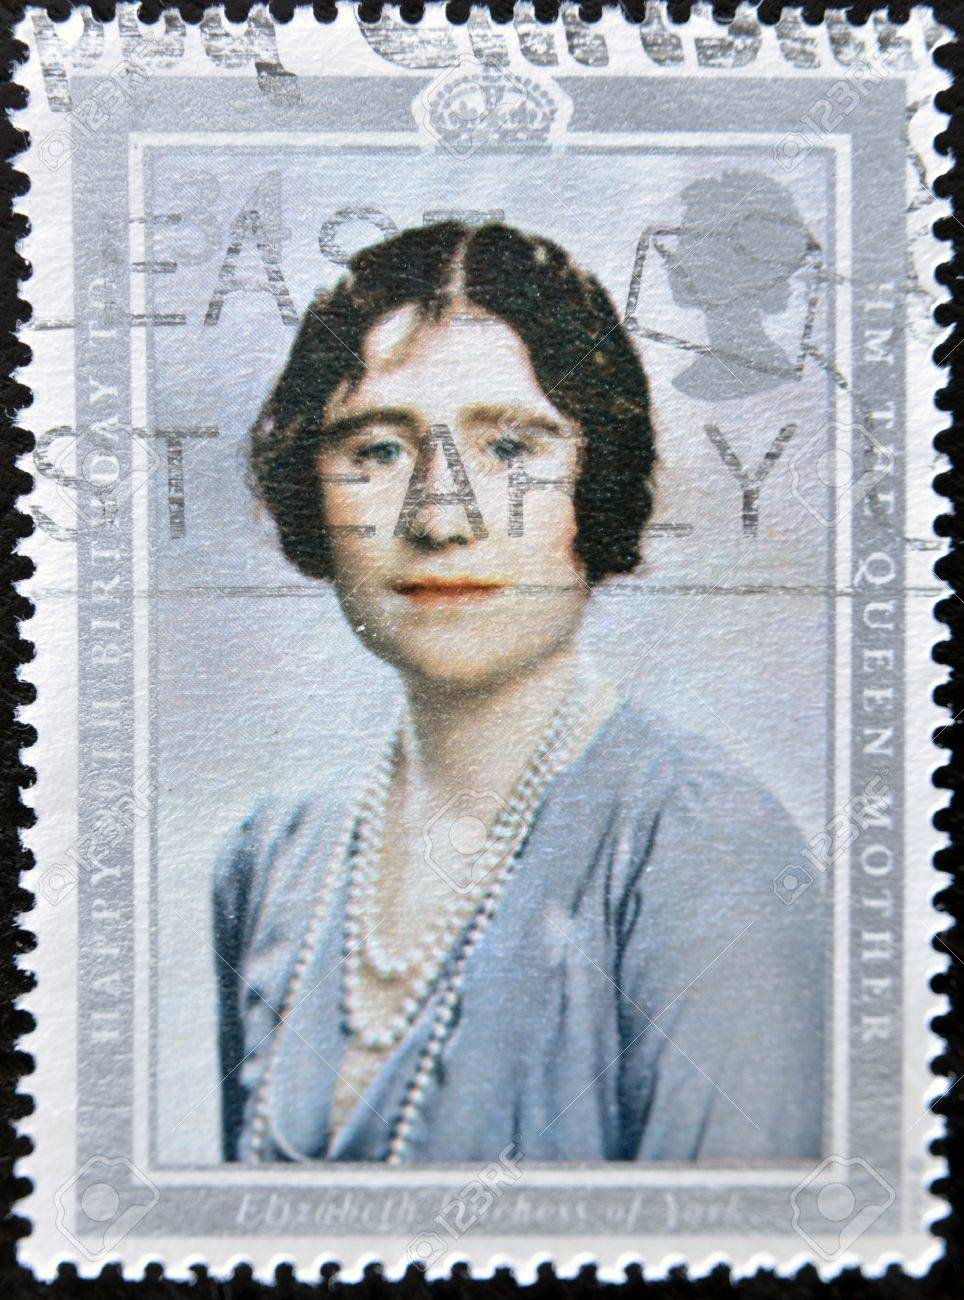 UNITED KINGDOM - CIRCA 2002: A stamp printed in Great Britain shows Queen Elizabeth, the queen mother, circa 2002  Stock Photo - 11805079